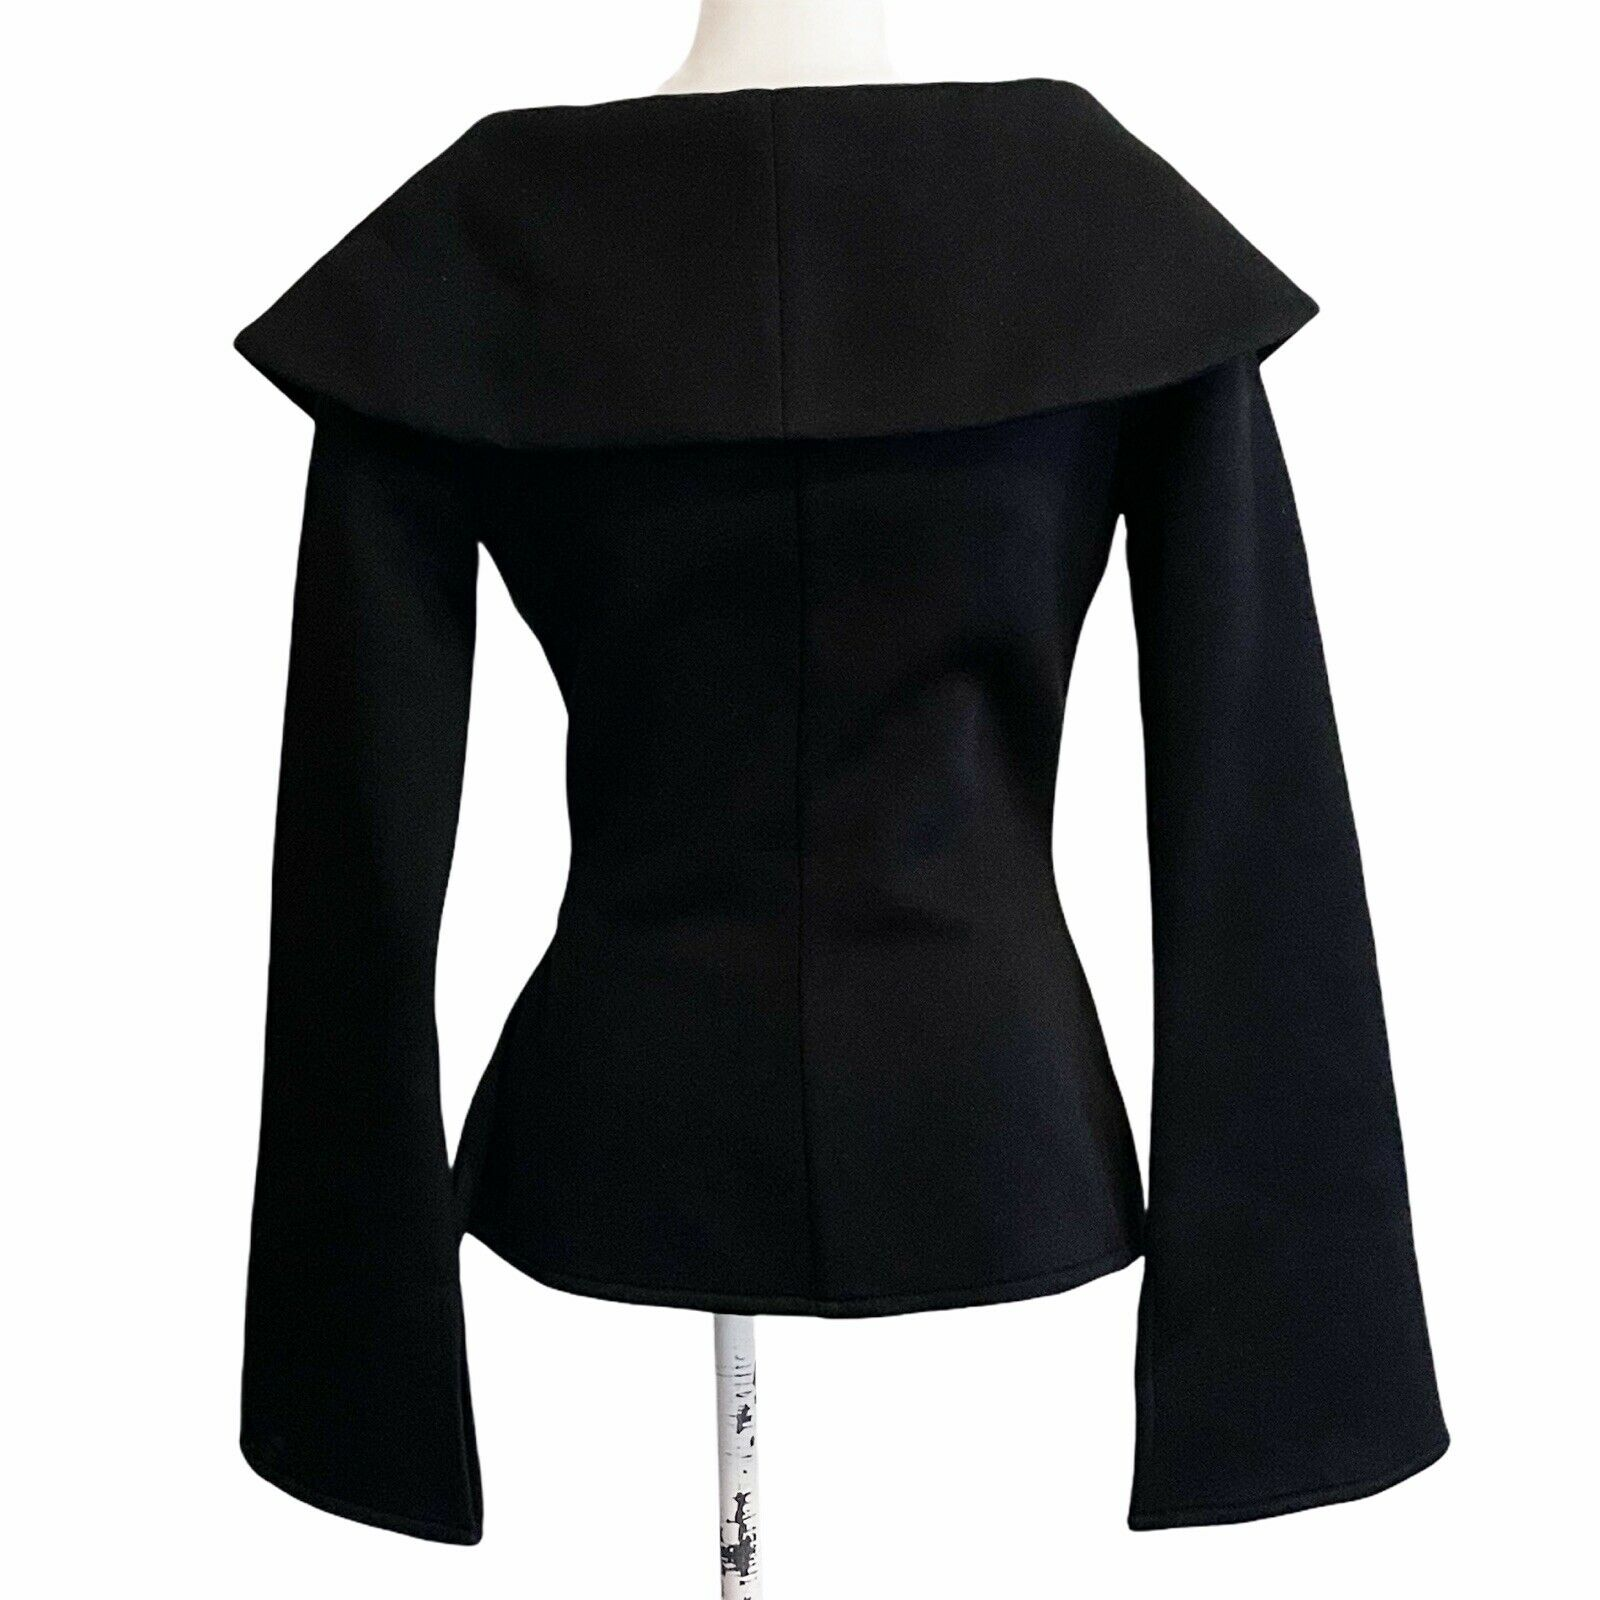 Beaufille Women's Clothing Size 2 Black Large Col… - image 2